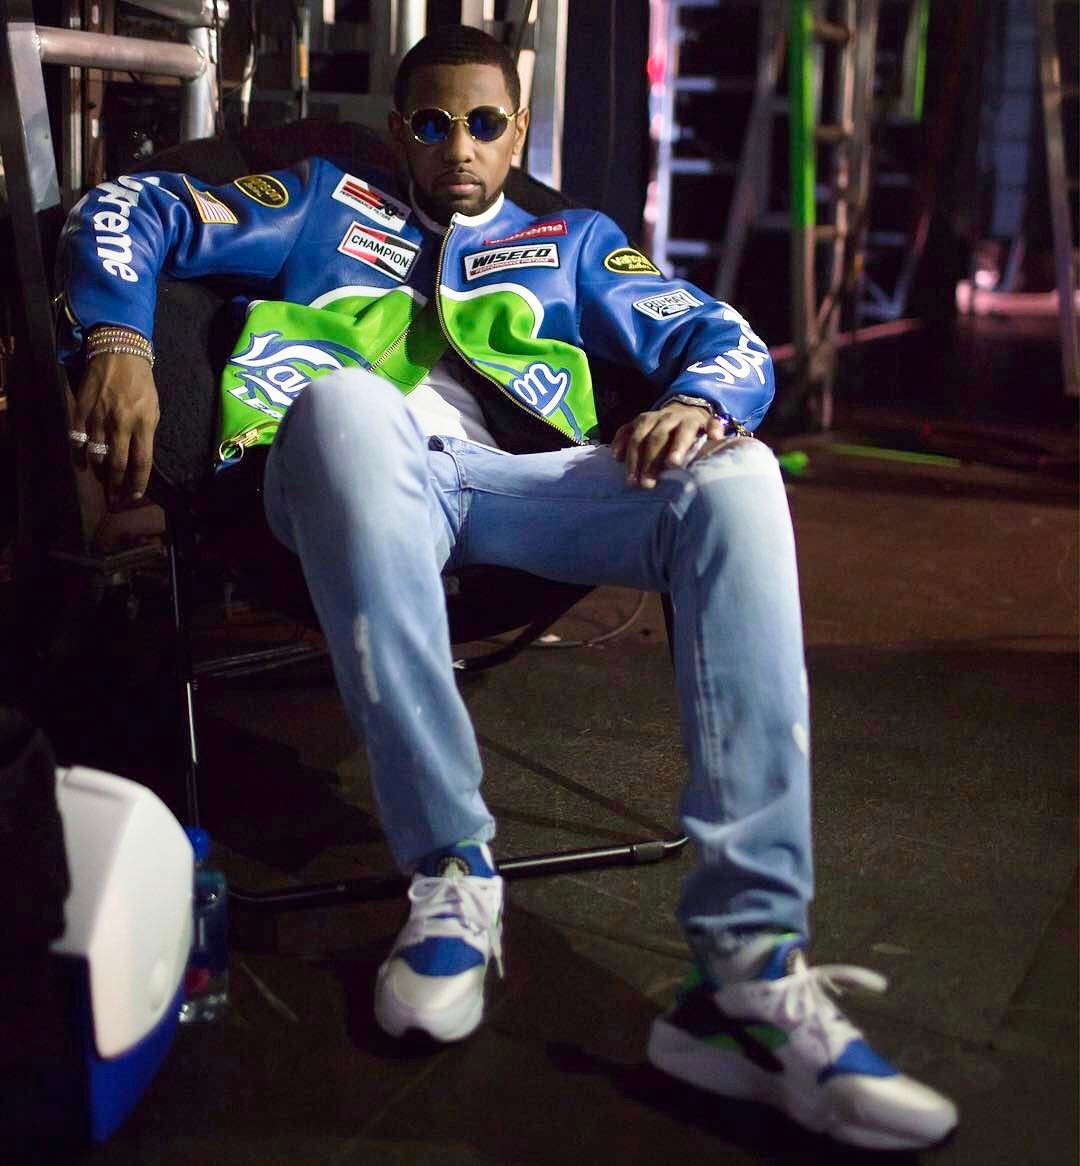 SPOTTED: Fabolous In Supreme x Vanson Leather Jacket And Nike Air Huarache Sneakers